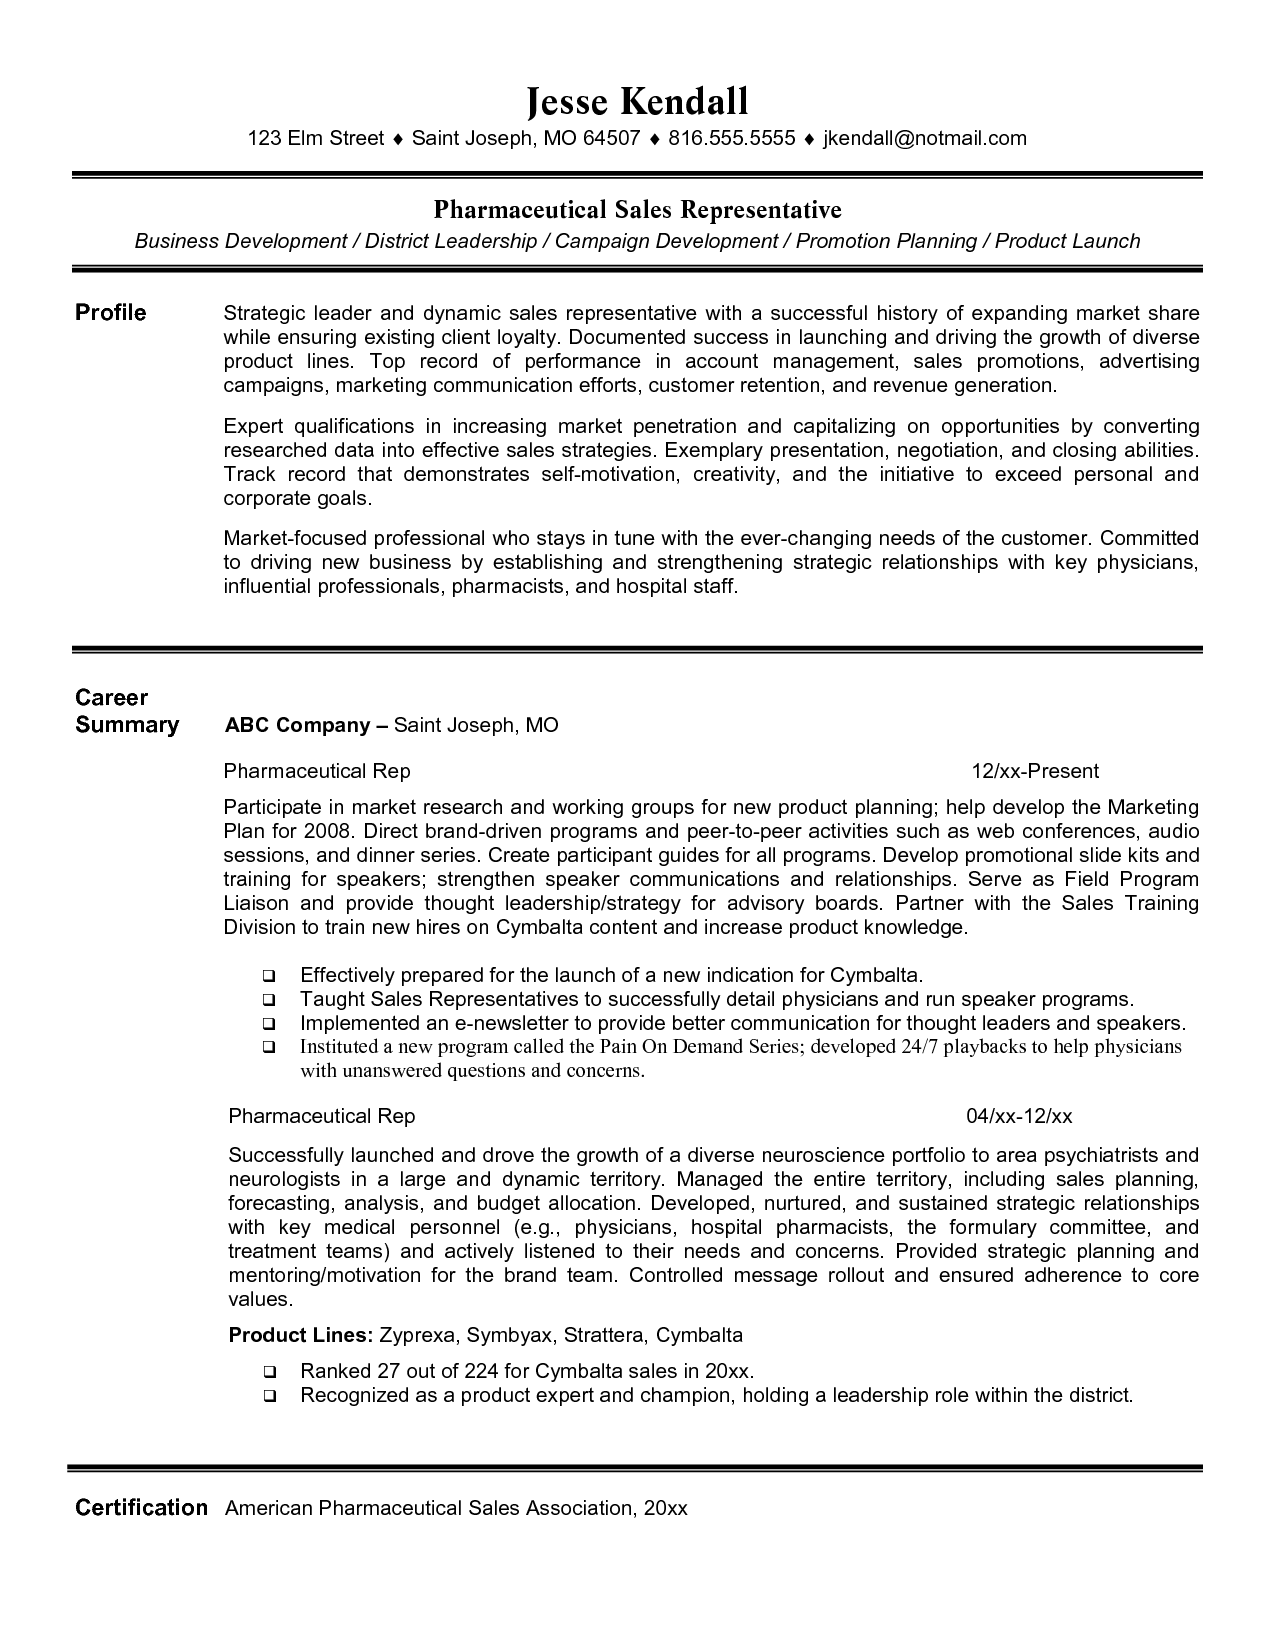 Pharmaceutical salesperson cover letter